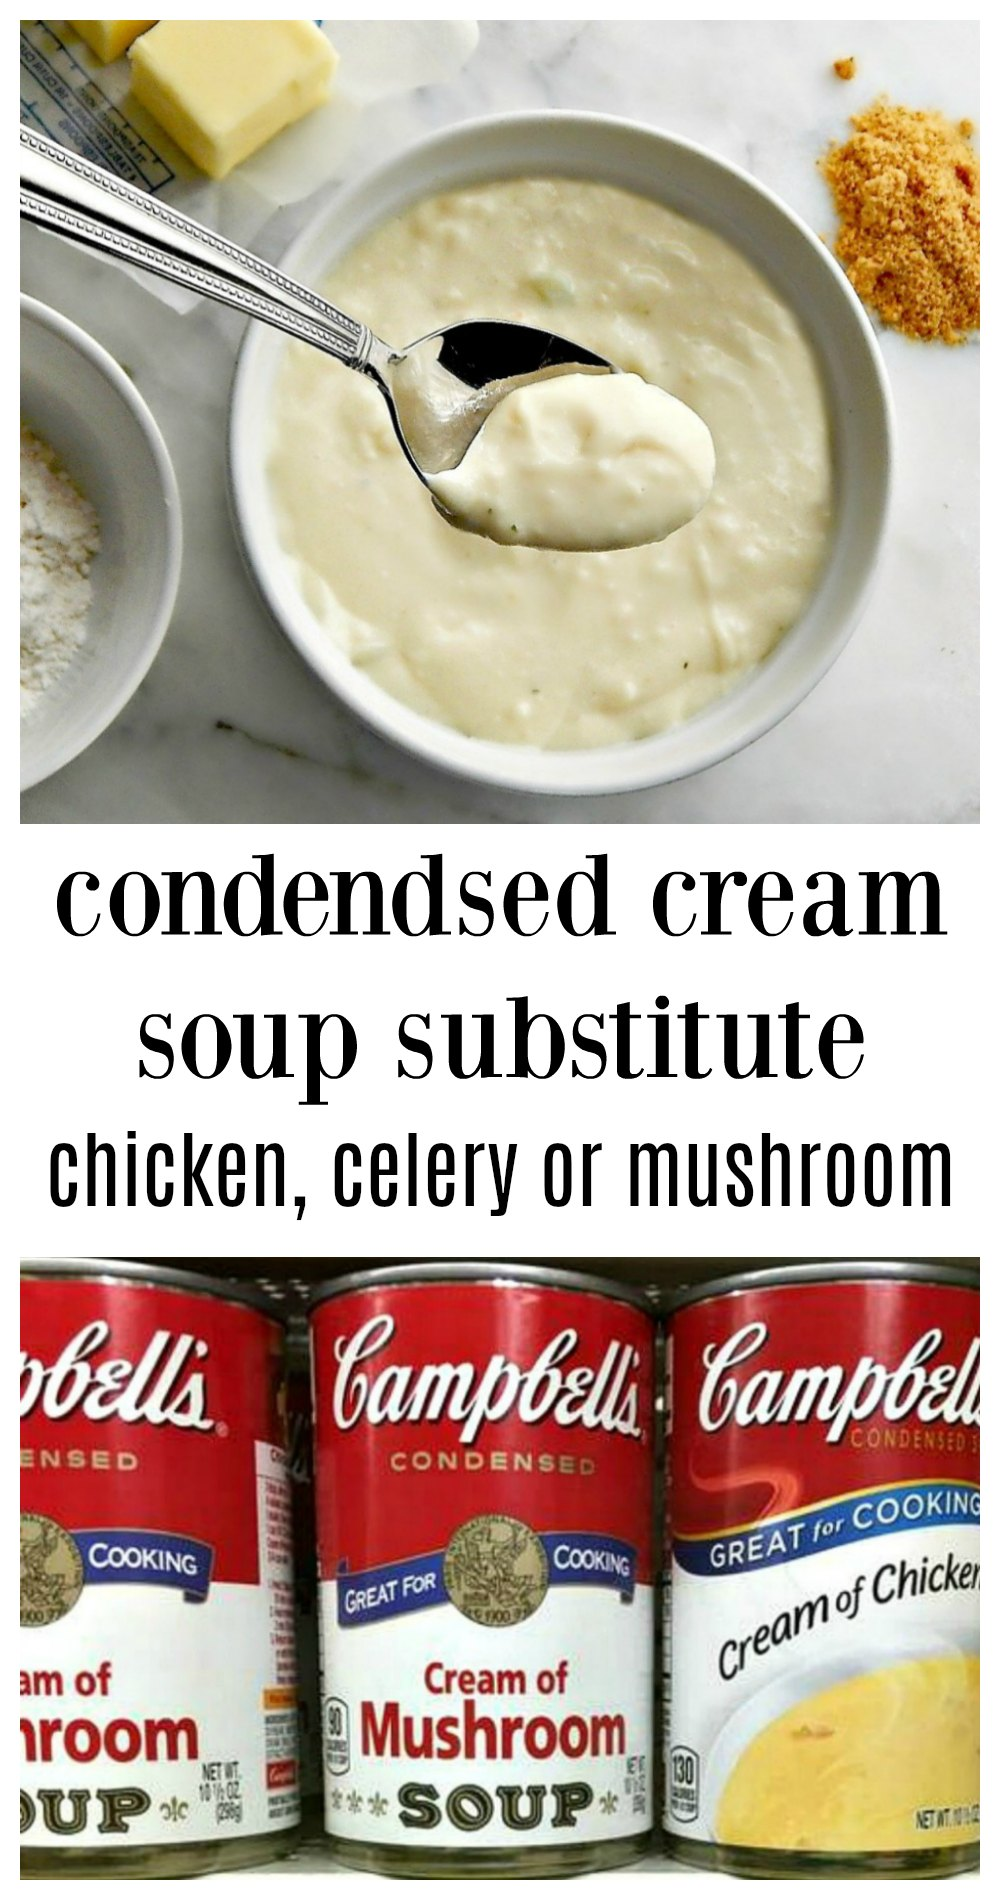 Cream of Anything Soup - Homemade Substitute for canned Condensed Cream of Mushroom, Cream of Celery and Cream of Chicken Soups, Minutes to make. #CreamSoupSubstitute #HomemadeCreamMushroomSoup #HomemadeCreamCelerySoup #HomemadeCreamChickenSoup